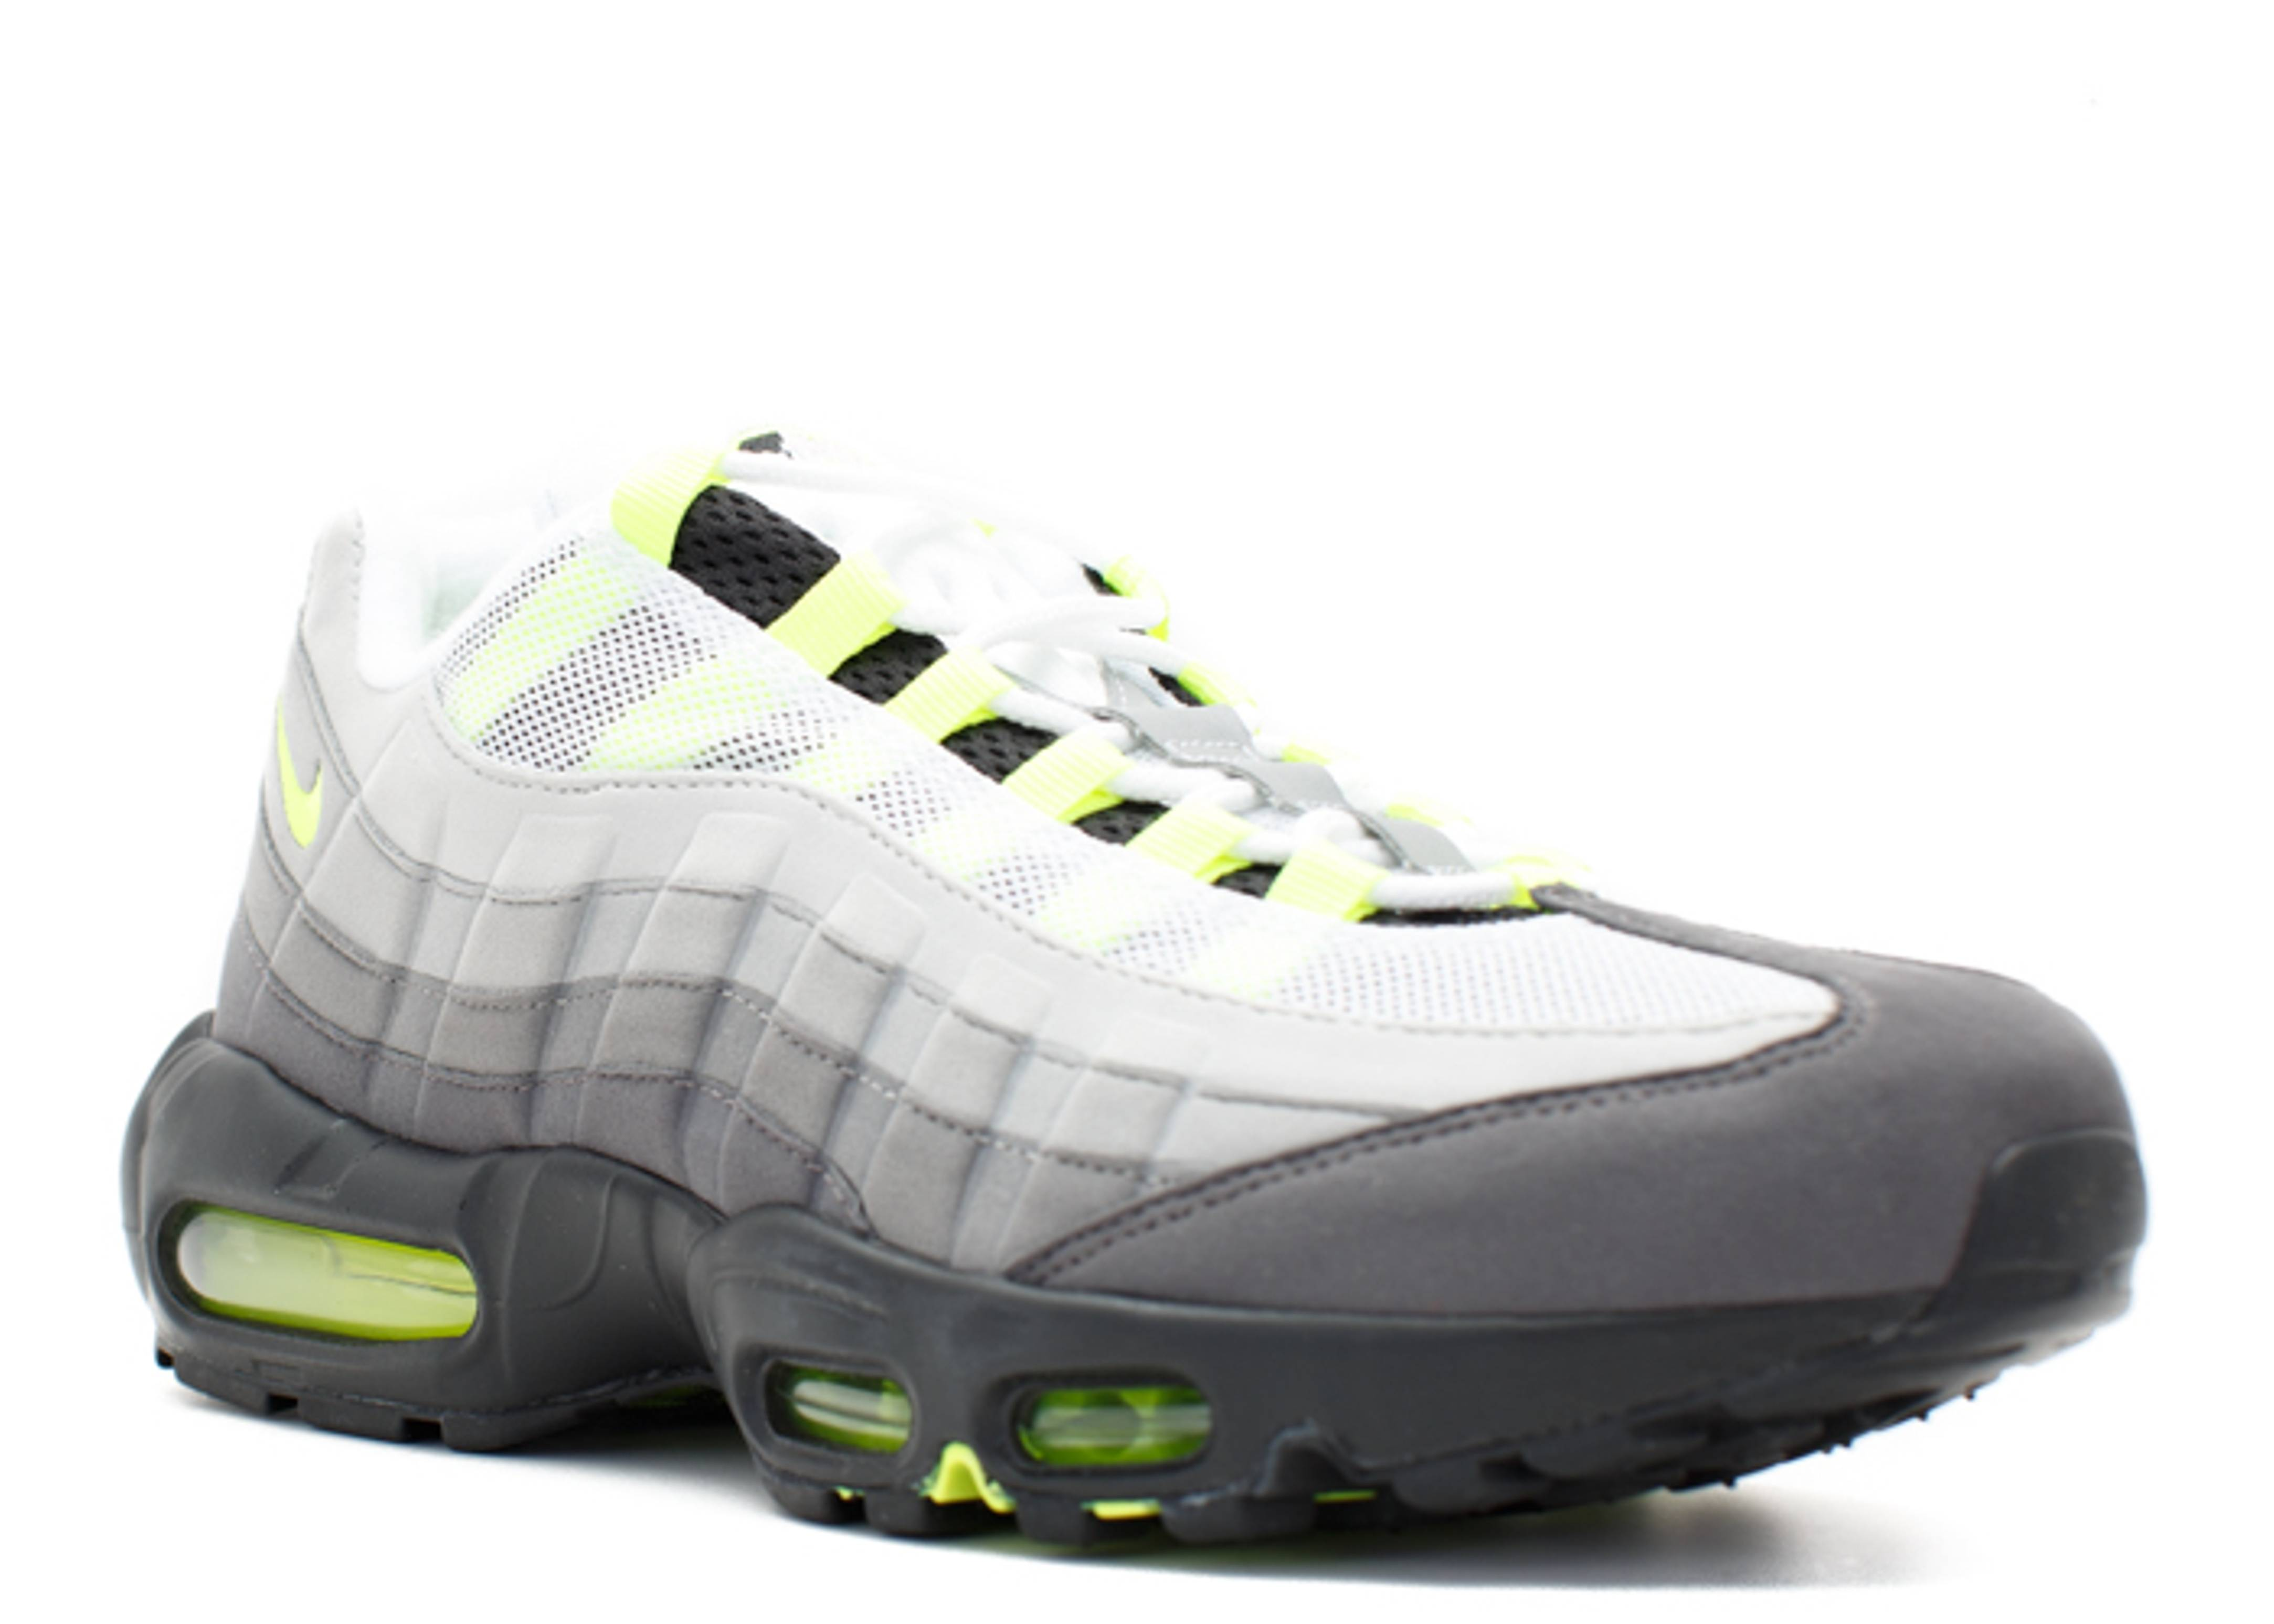 air max 95 og neon black volt medium ash flight club. Black Bedroom Furniture Sets. Home Design Ideas